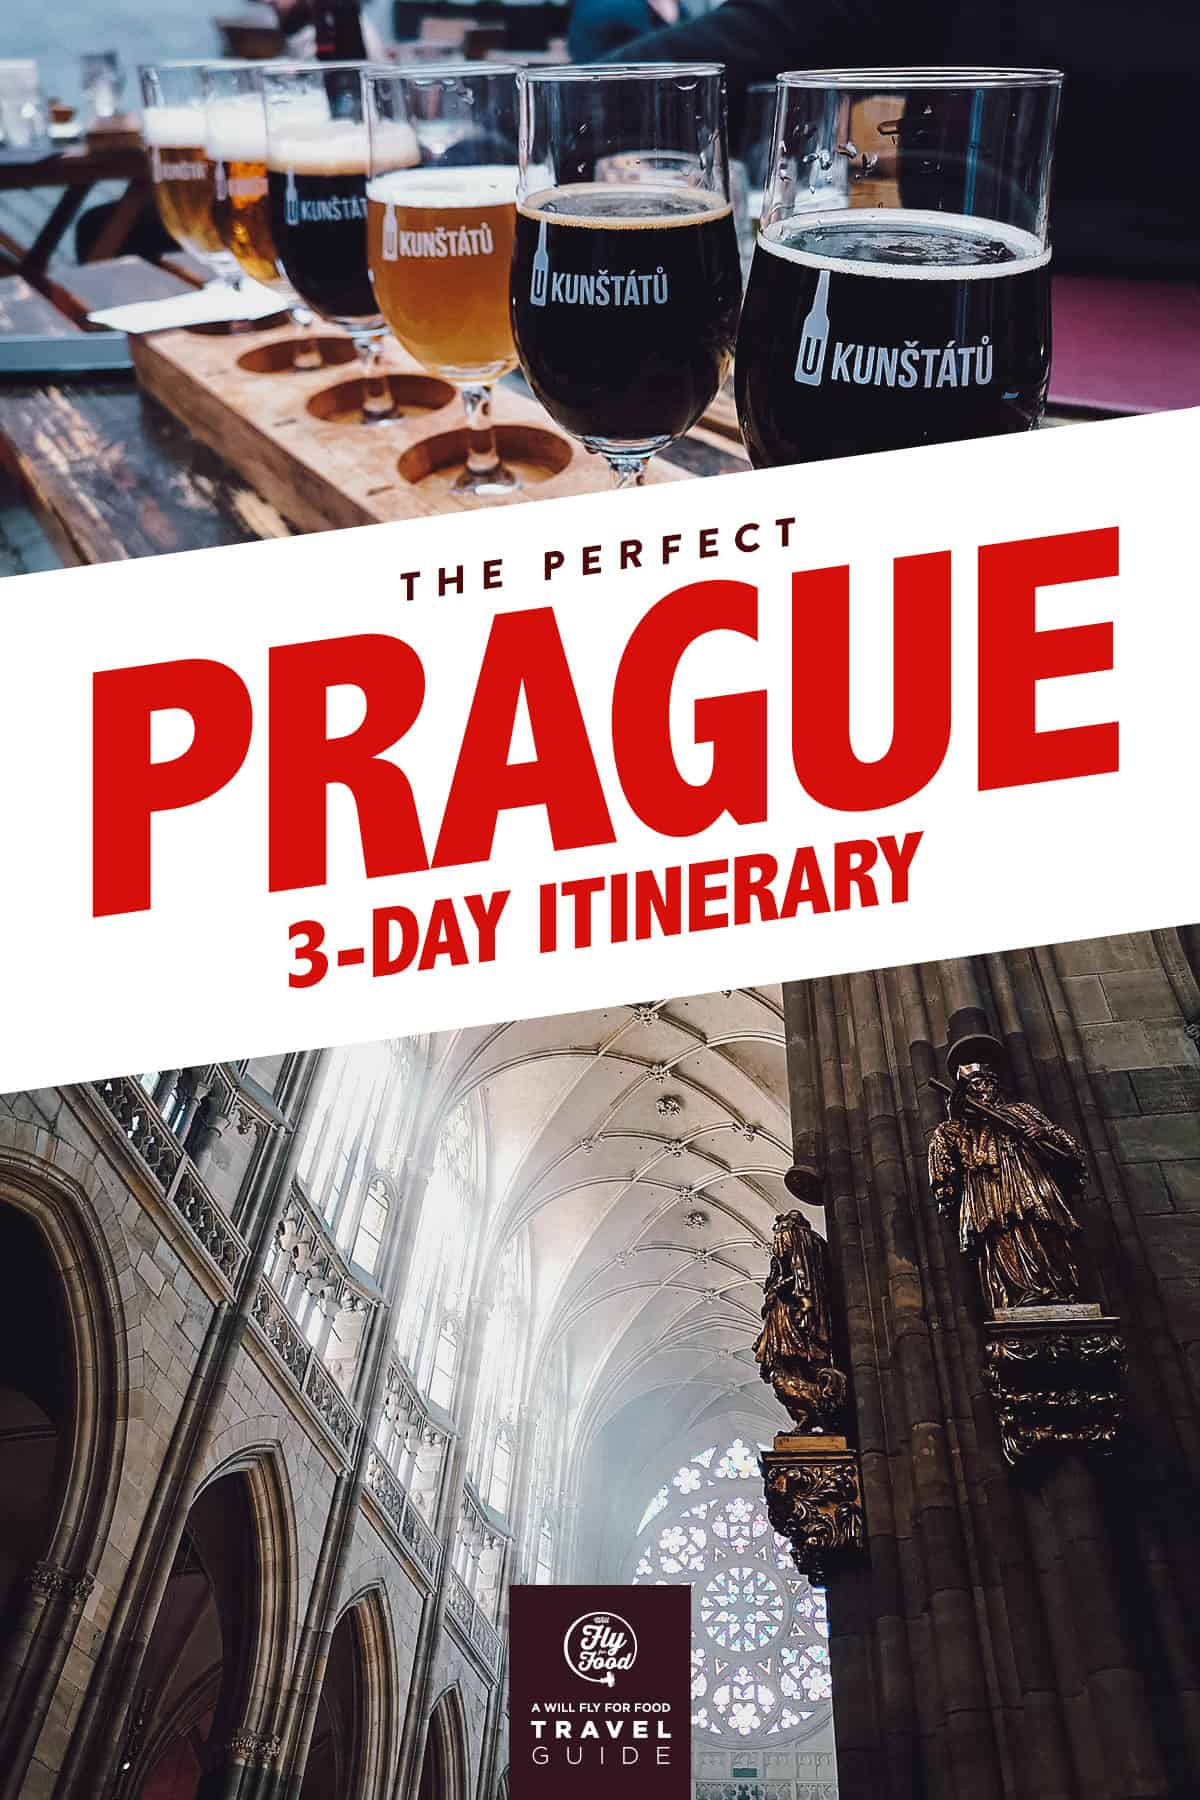 St. Vitus Cathedral and a flight of beer